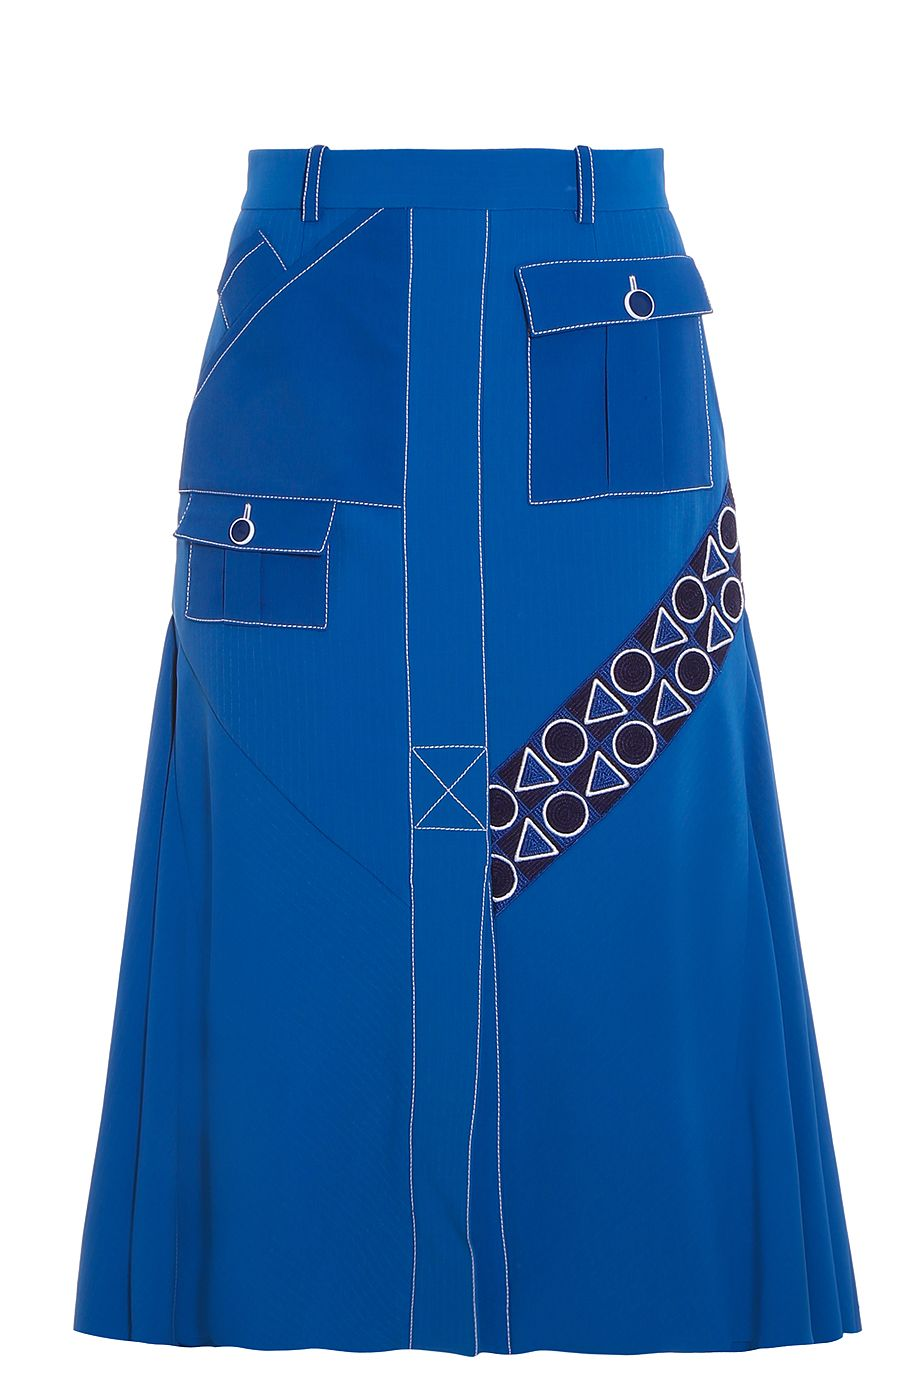 PETER PILOTTO Pocket Midi Skirt. #peterpilotto #cloth #